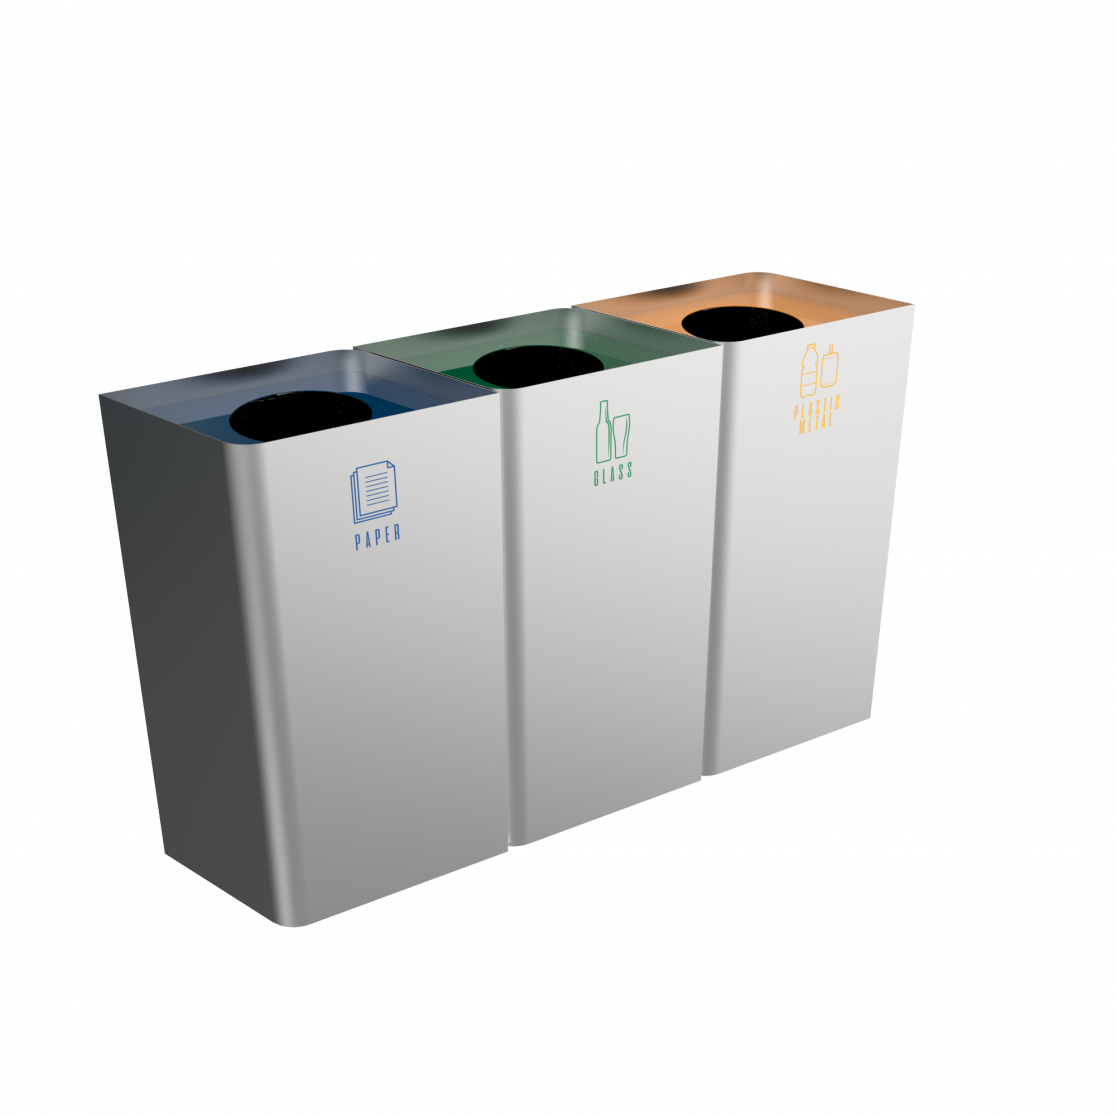 Pollux sst stainless steel recycling bins with modern design pollux sst stainless steel recycling bins with modern design dailygadgetfo Image collections